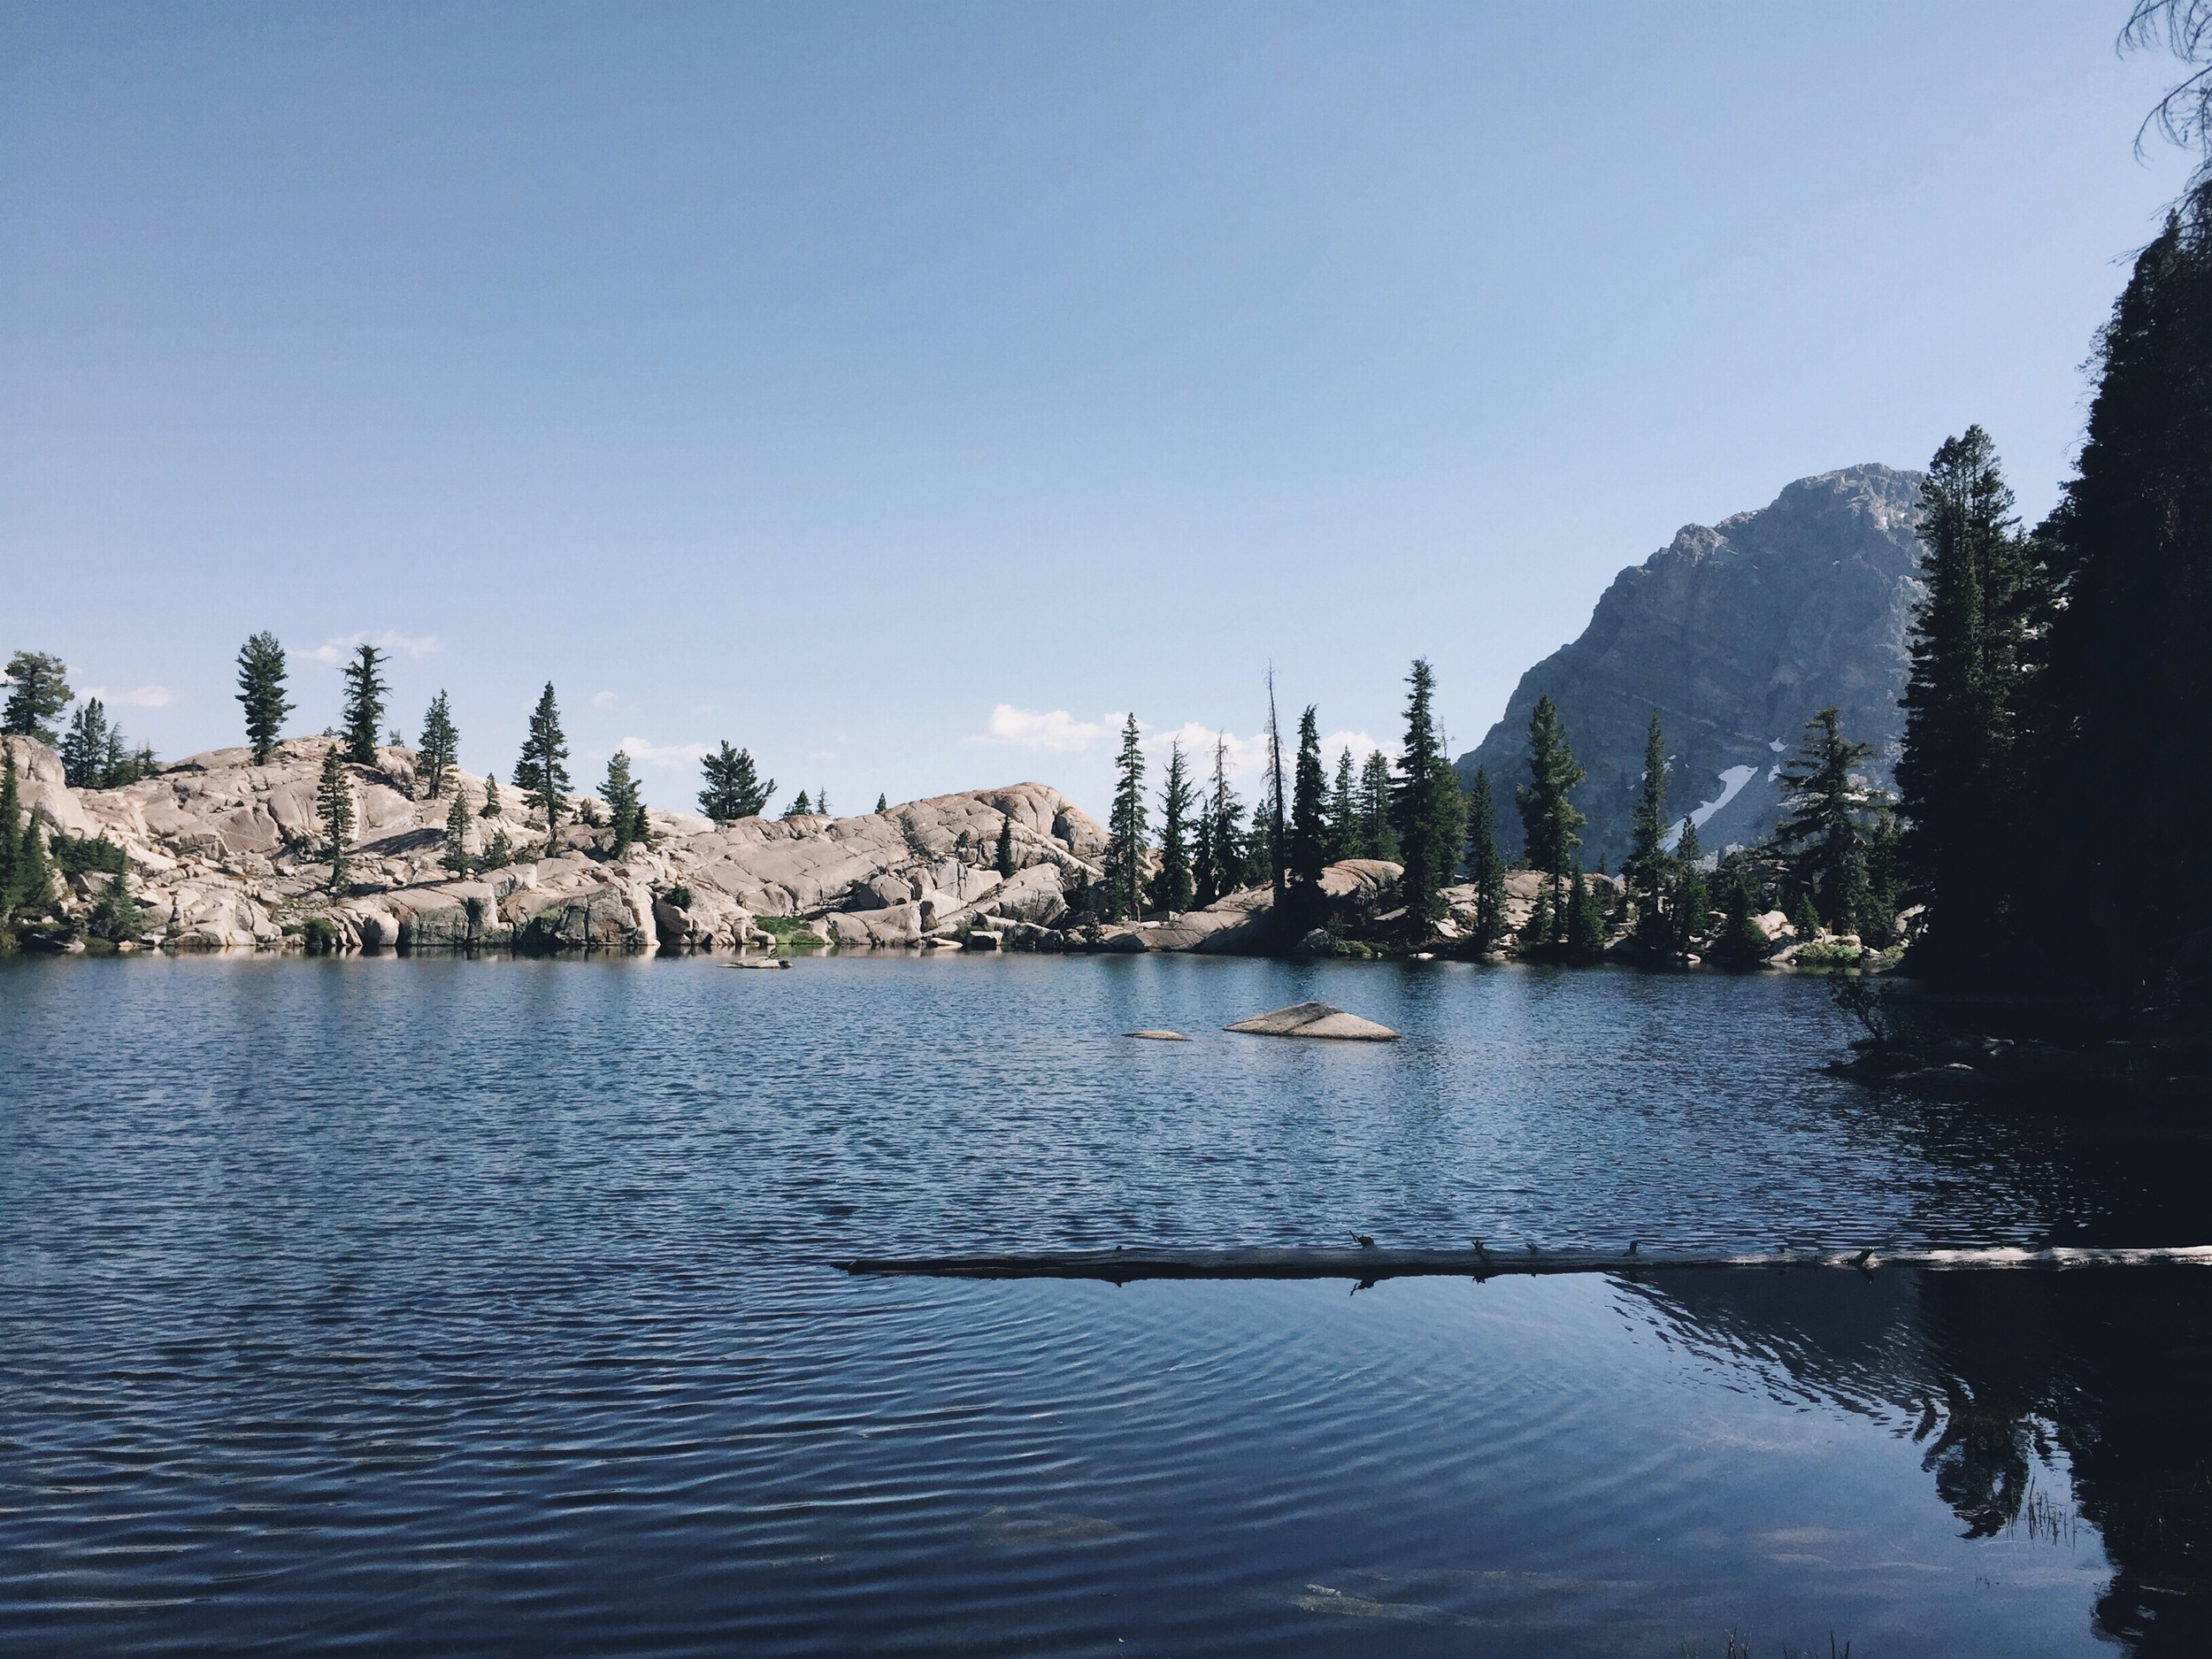 There's always a hidden alpiune lake after some climb.